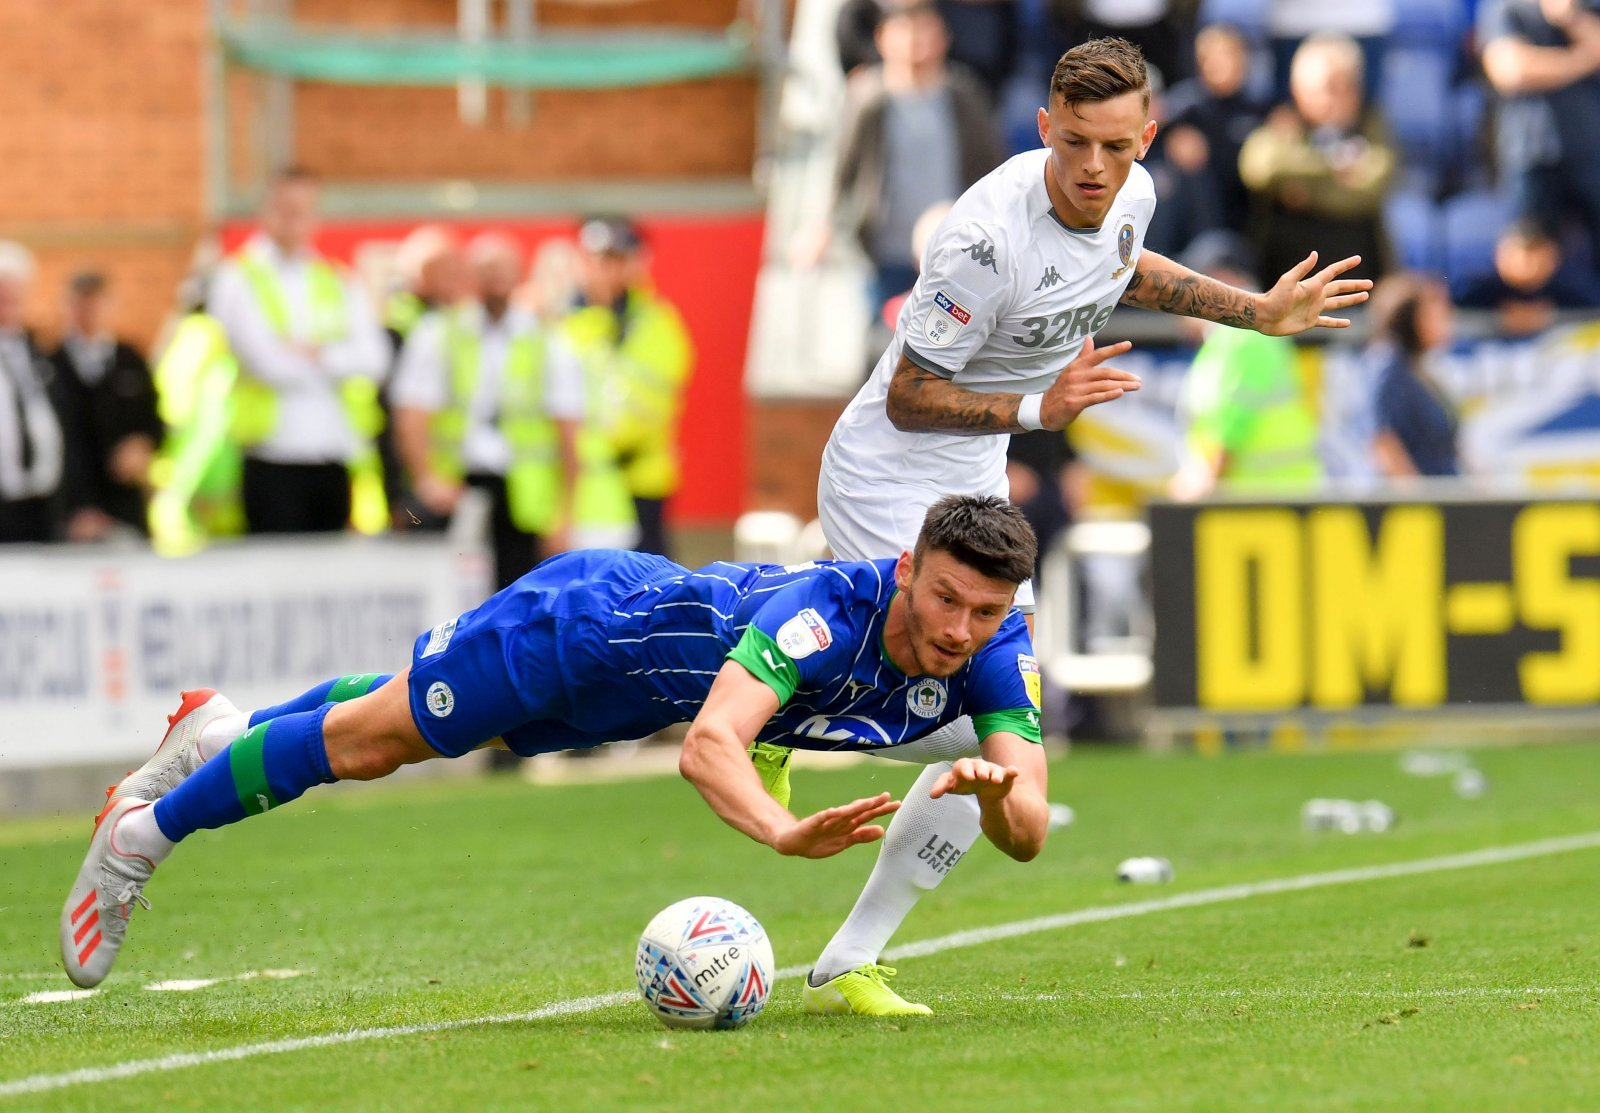 Leeds: Fans hail Ben White after nomination for Player of the Month